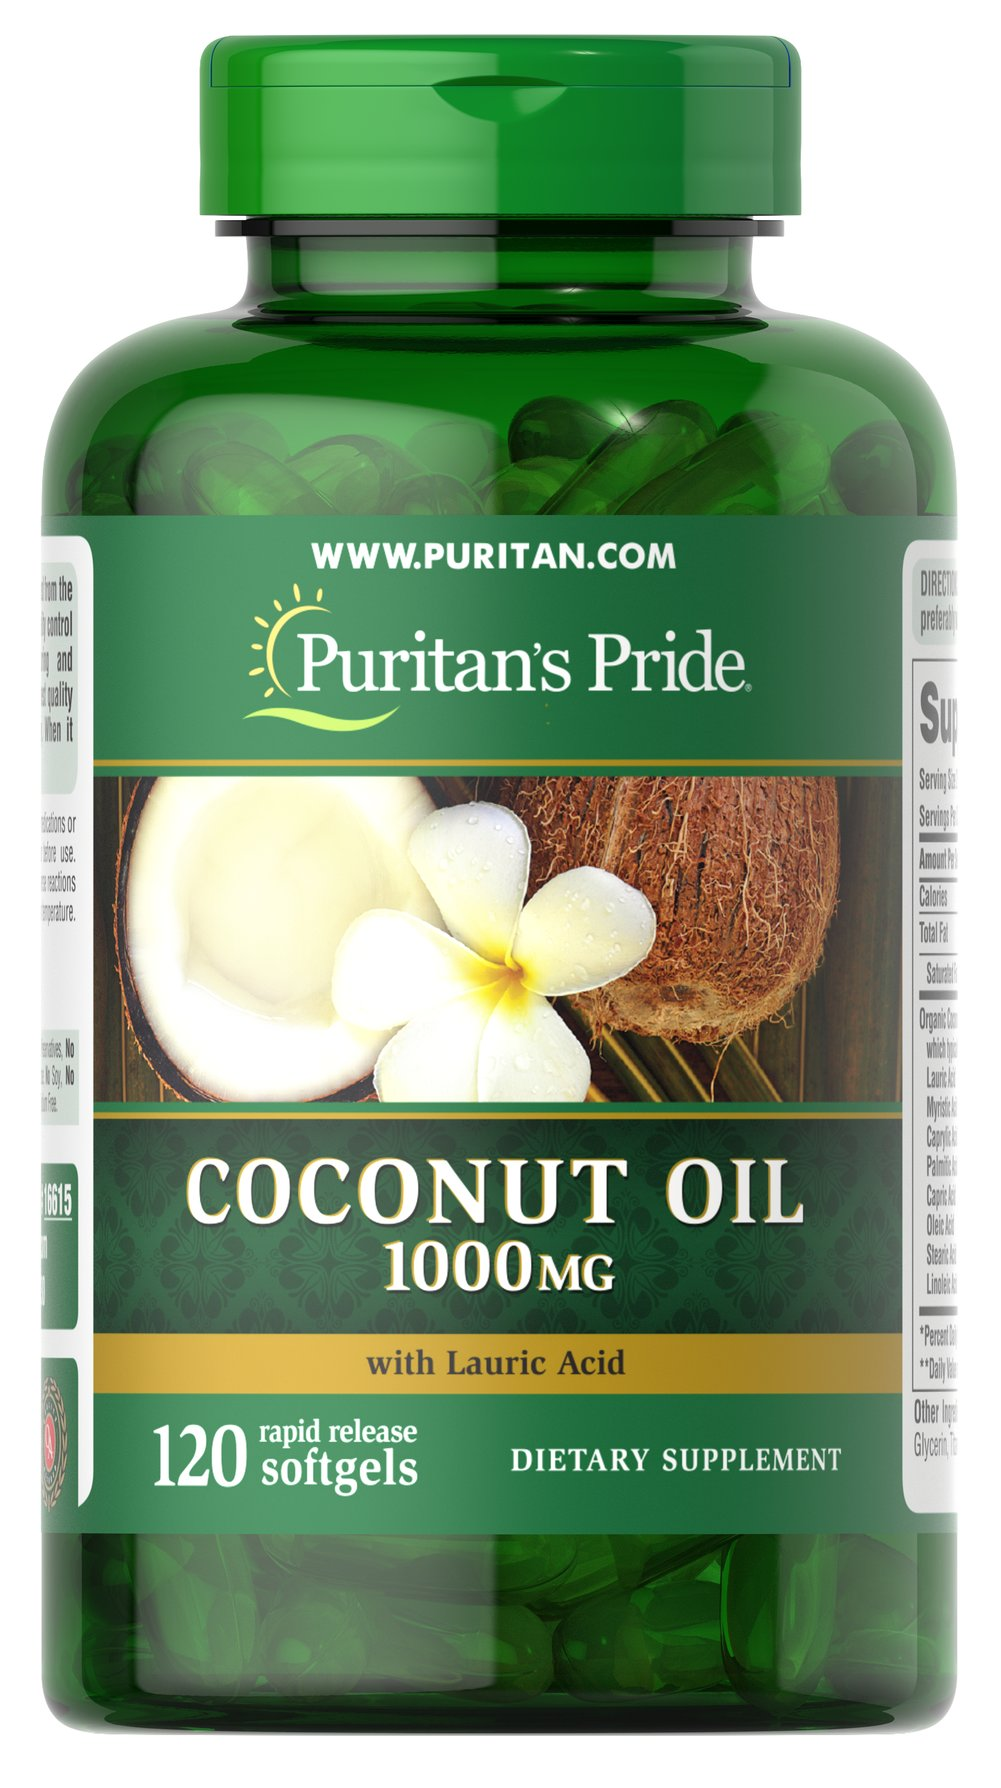 Coconut Oil 1000 mg <p>Coconuts are enjoyed in tropical regions around the world and now you can enjoy the benefits of Coconut Oil in a convenient softgel. Coconut Oil provides you with a natural energy source, and contains essential fatty acids and Medium Chain Triglycerides (MCTs).   MCTs are oxidized differently in the body than other fats, making Coconut Oil a readily available energy source.**</p> 120 Softgels 1000 mg $15.98